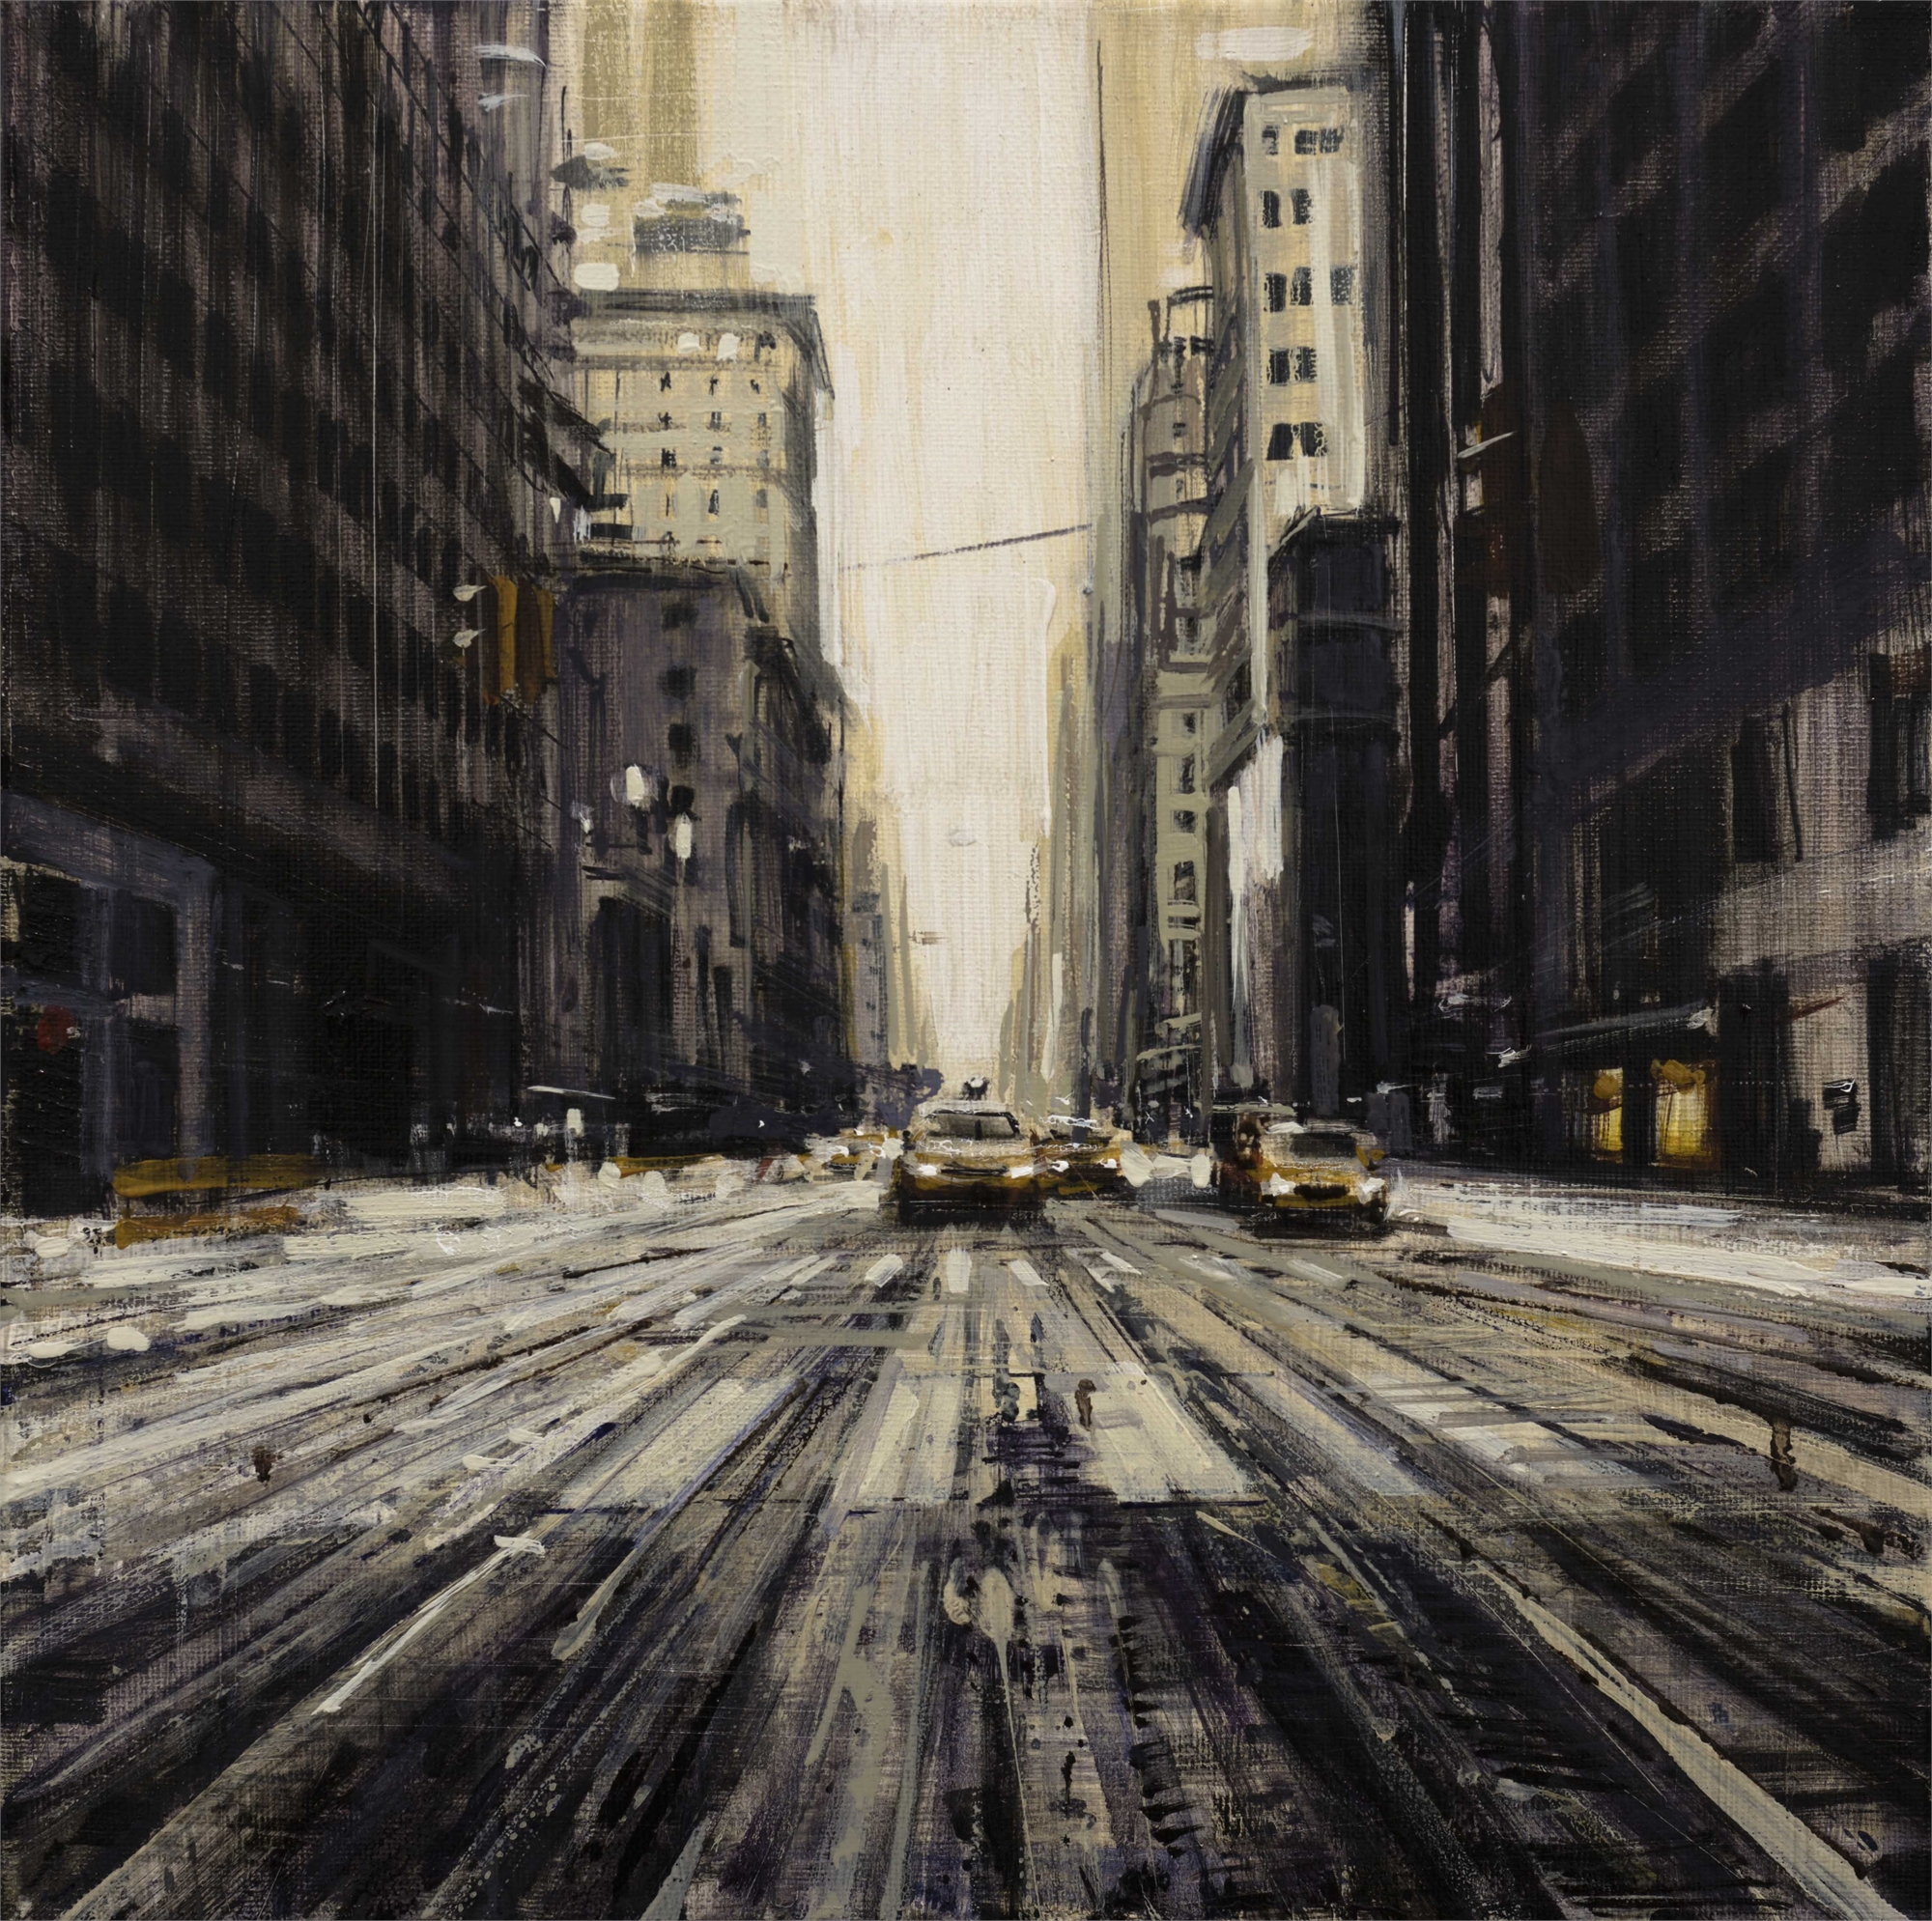 Snowy Street in NYC by Valerio D'Ospina